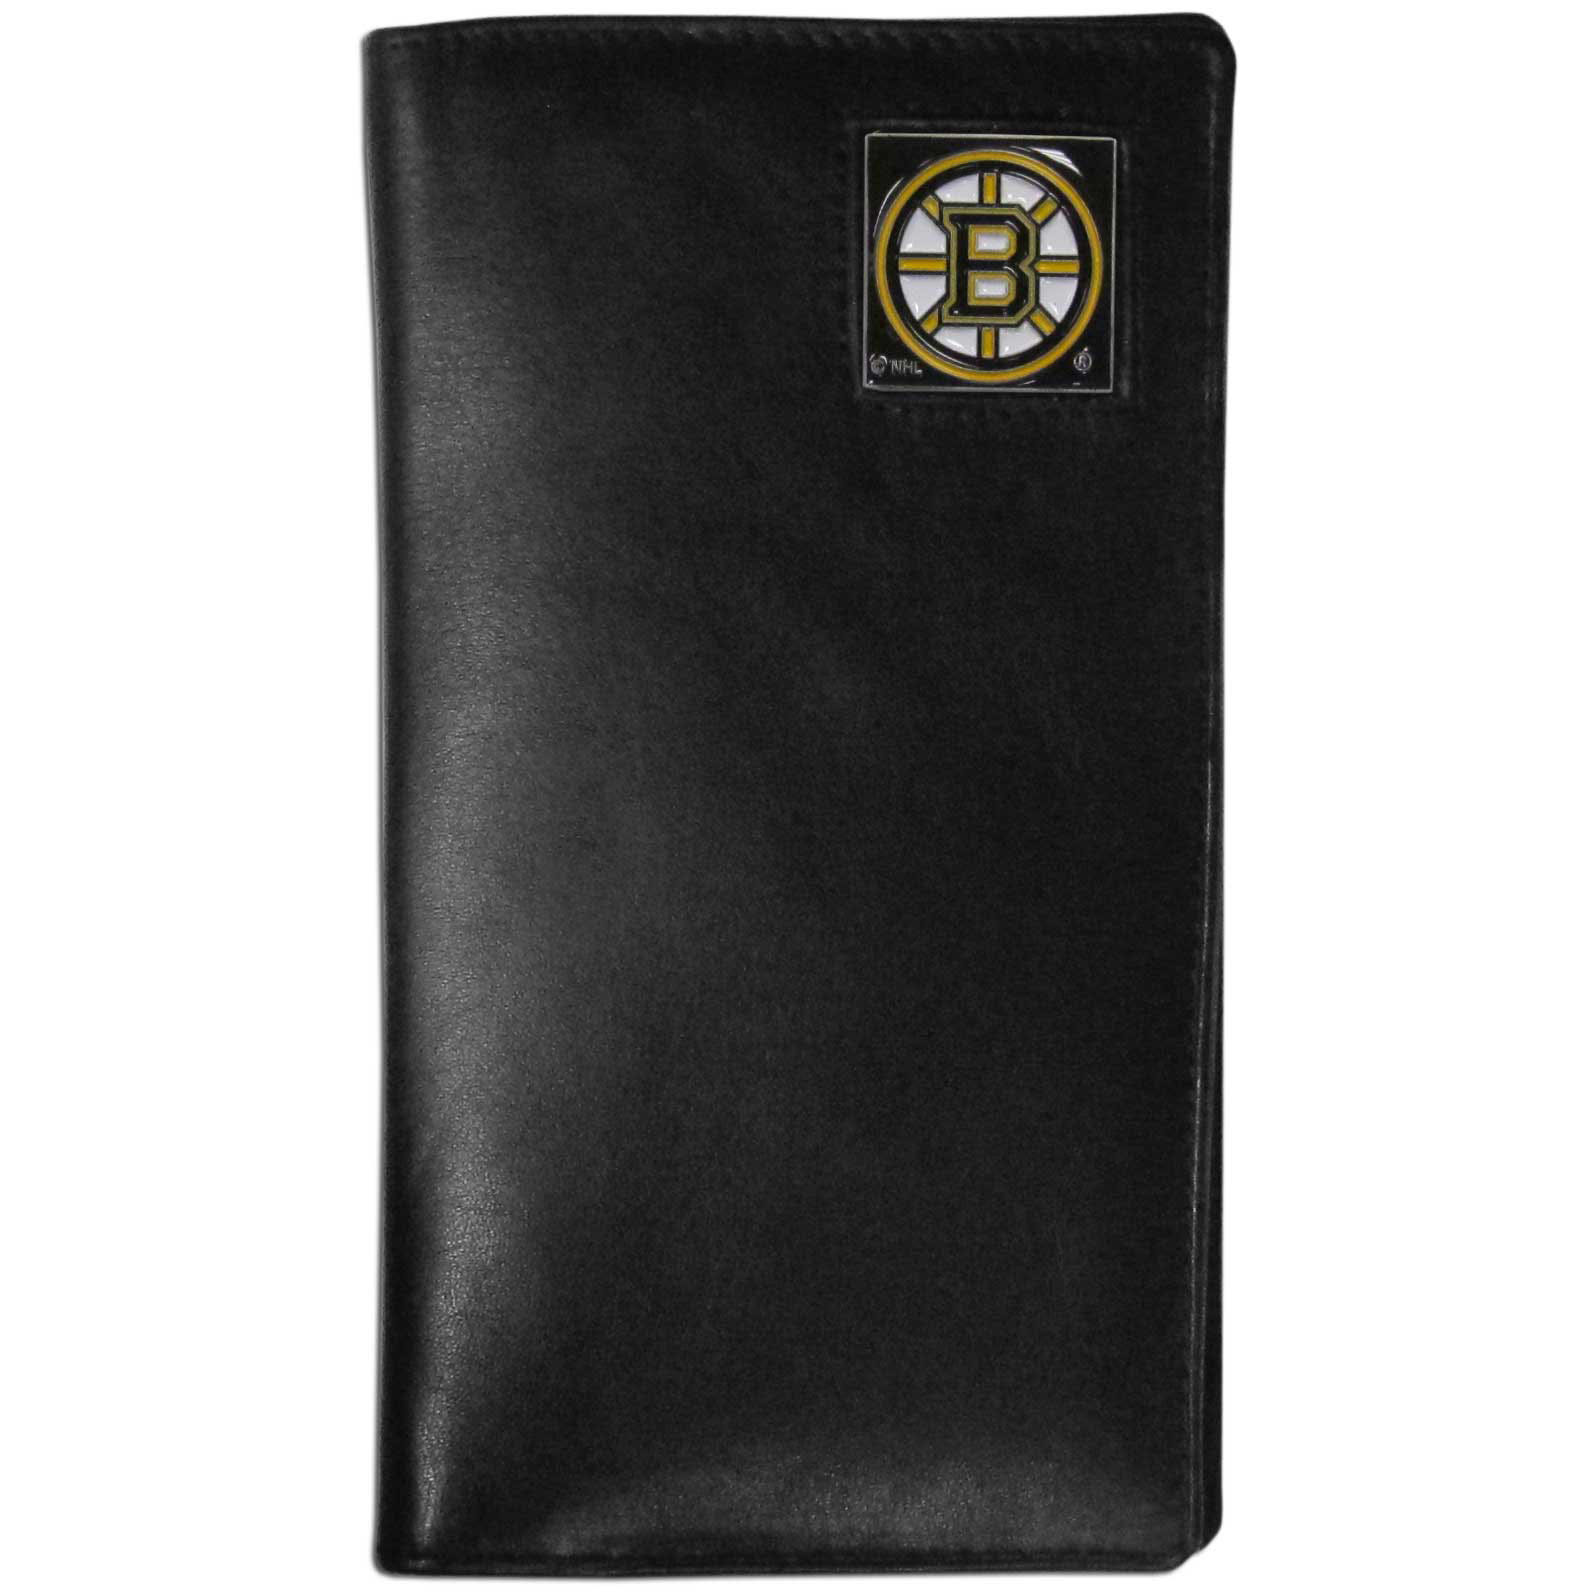 Boston Bruins Tall Leather Wallet - This officially licensed Boston Bruins tall leather wallet cover is made of high quality leather with a fully cast metal Boston Bruins emblem with enameled Boston Bruins color detail. The cover fits both side and top loaded checks and includes a large zippered pocket, windowed ID slot, numerous credit card slots and billfold pocket. Thank you for visiting CrazedOutSports